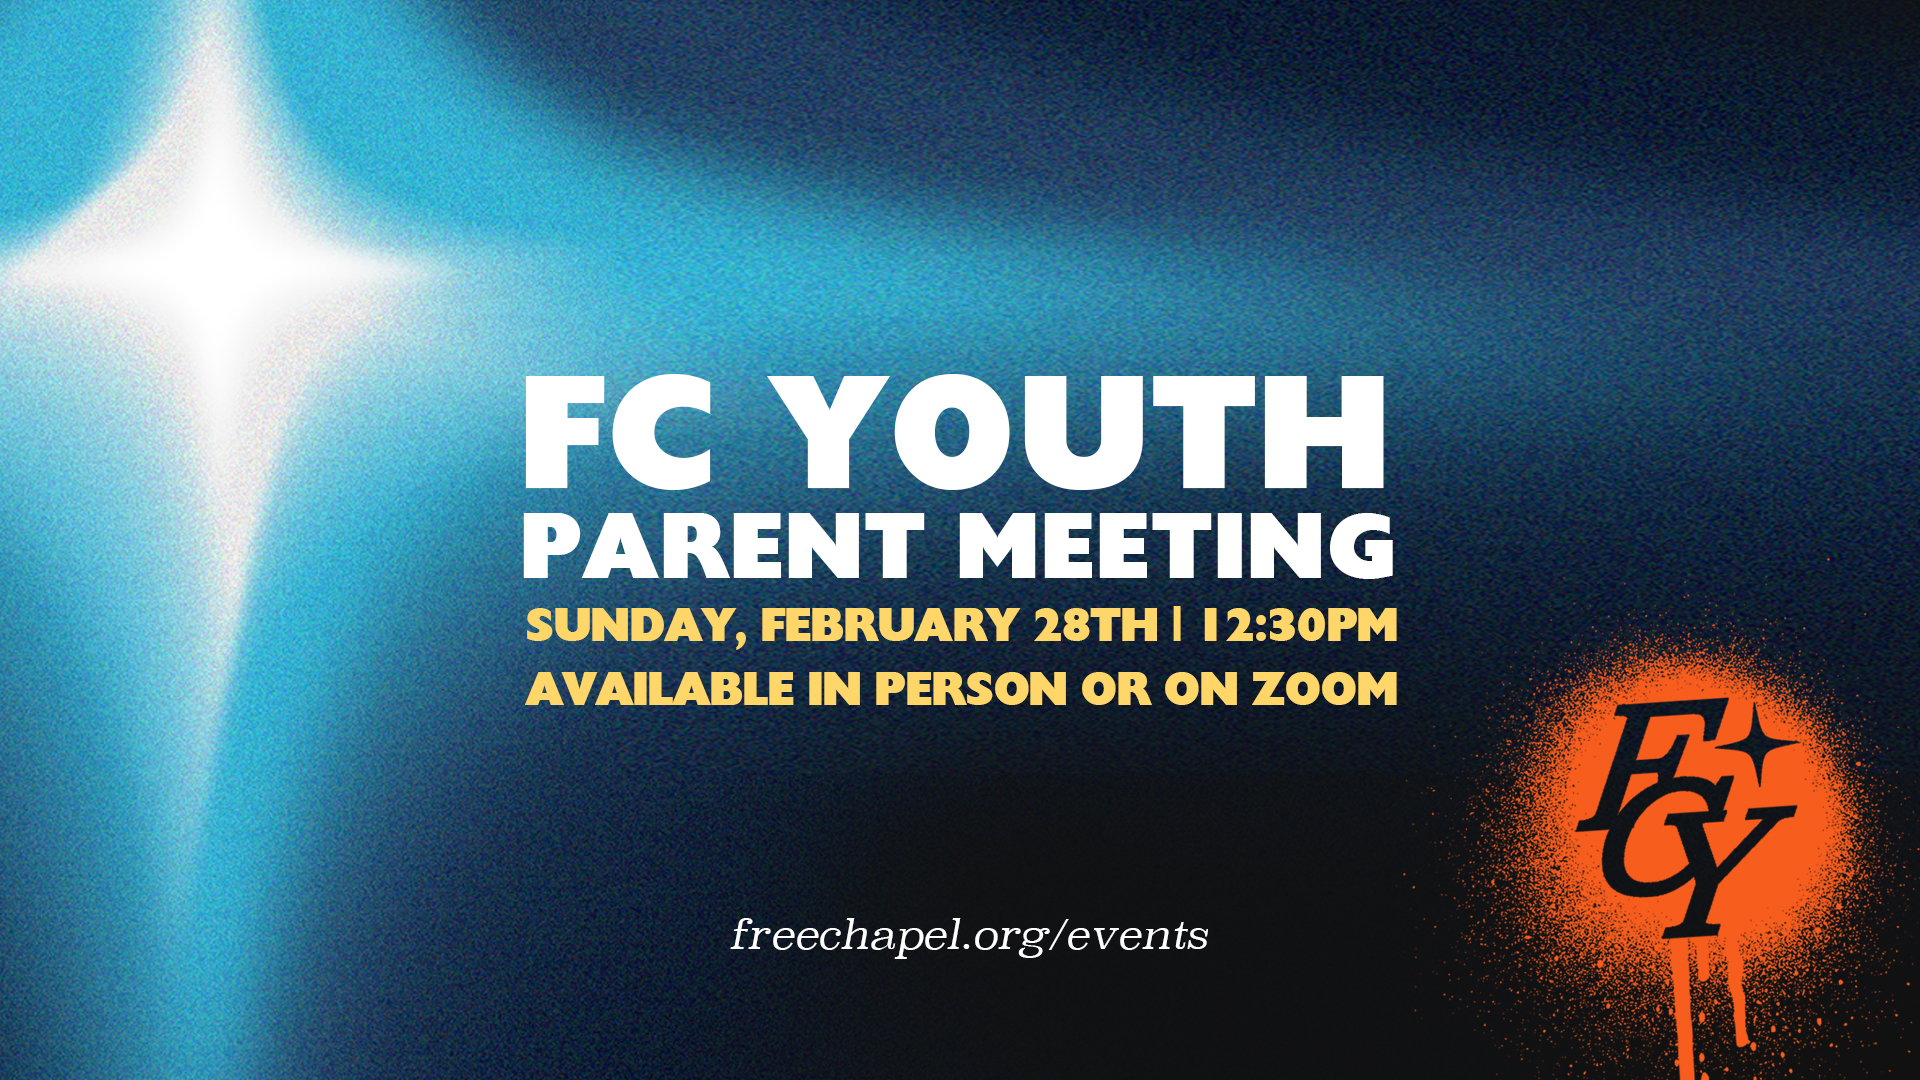 FC Youth Parent Meeting at the Gainesville campus